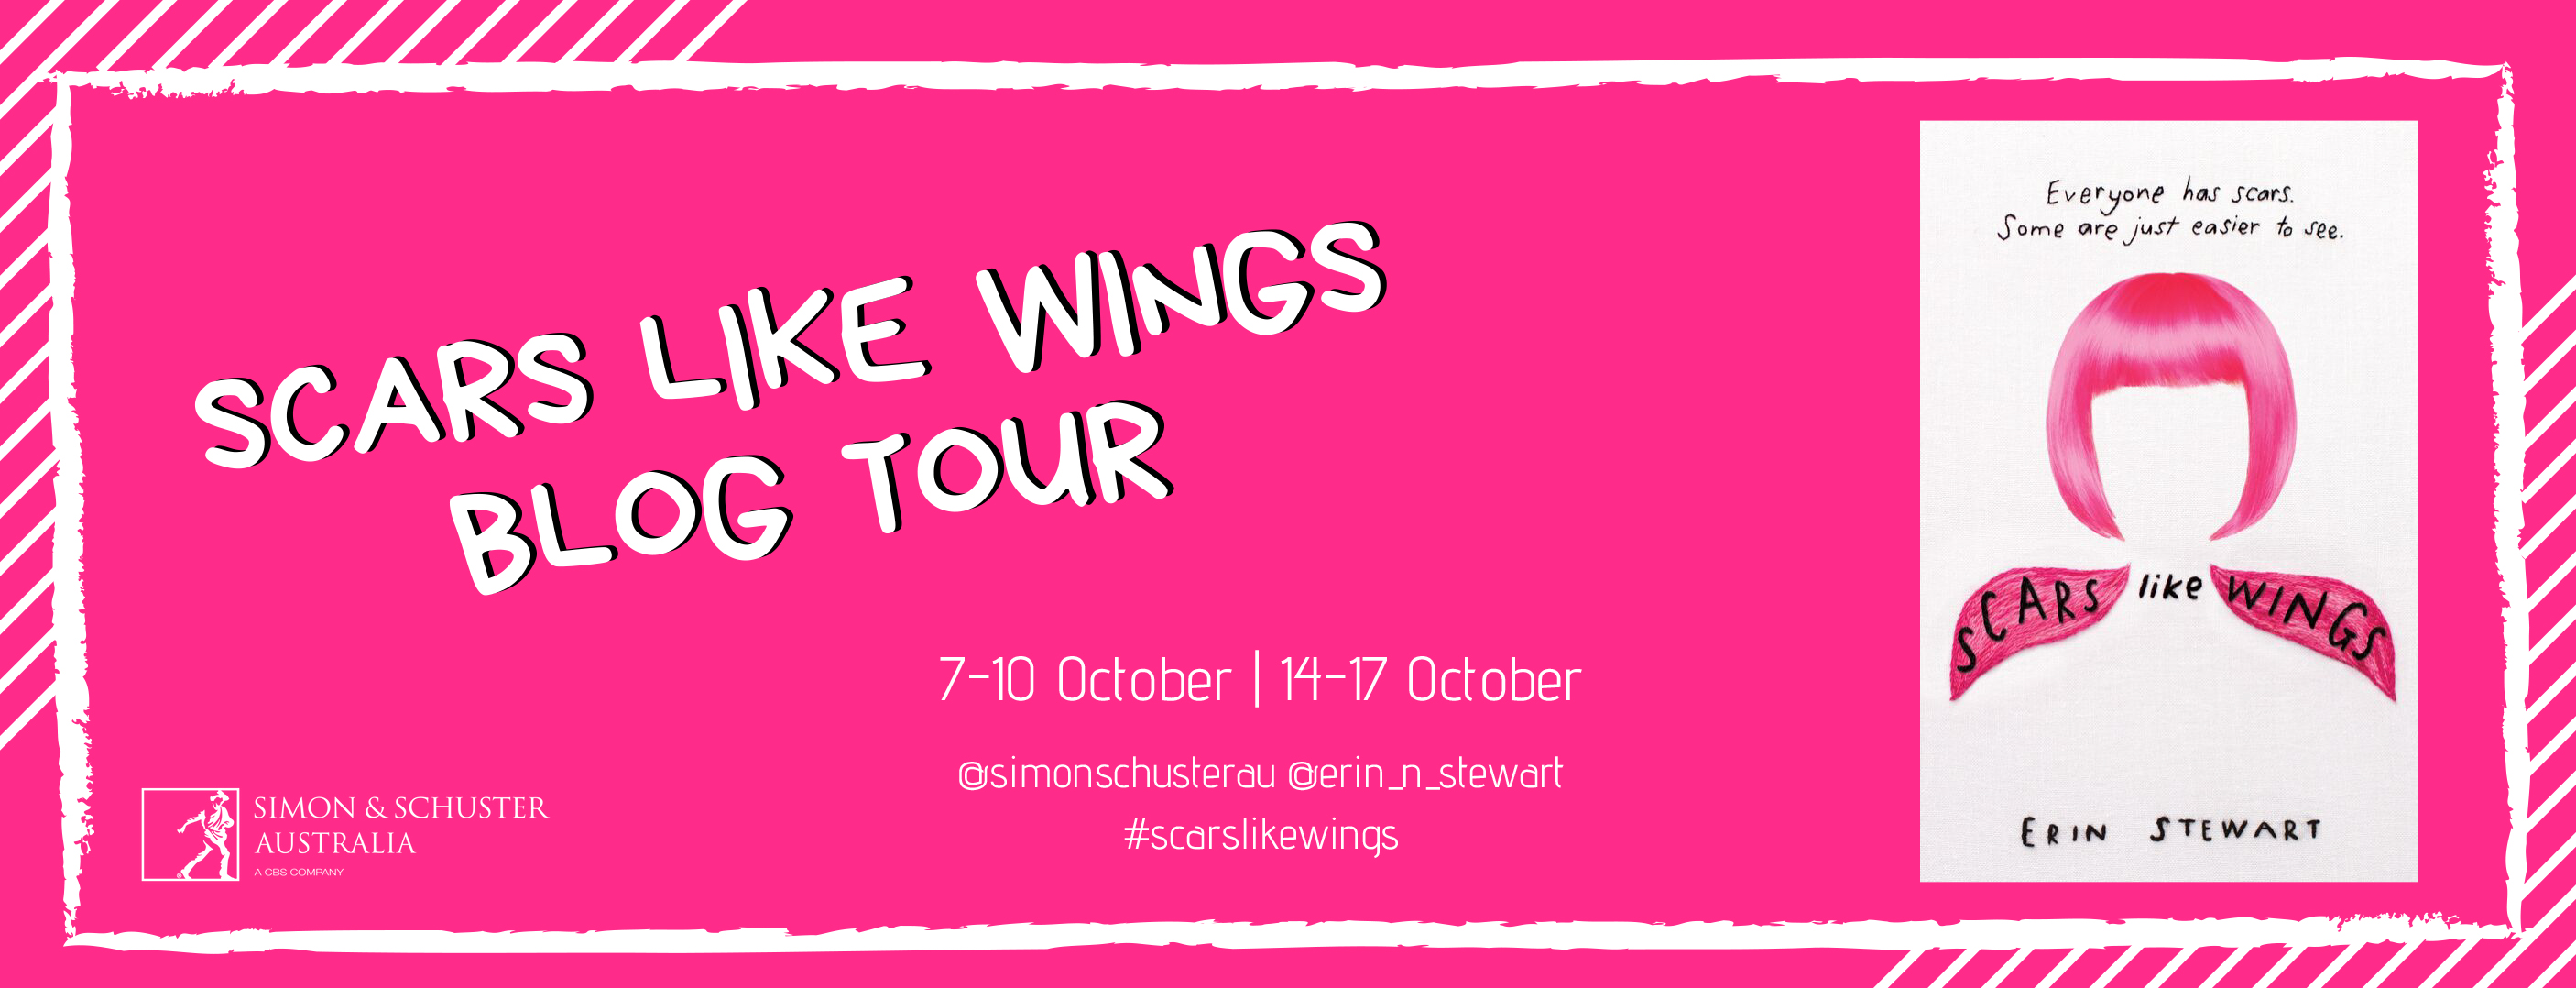 Scars Like Wings Blog Tour